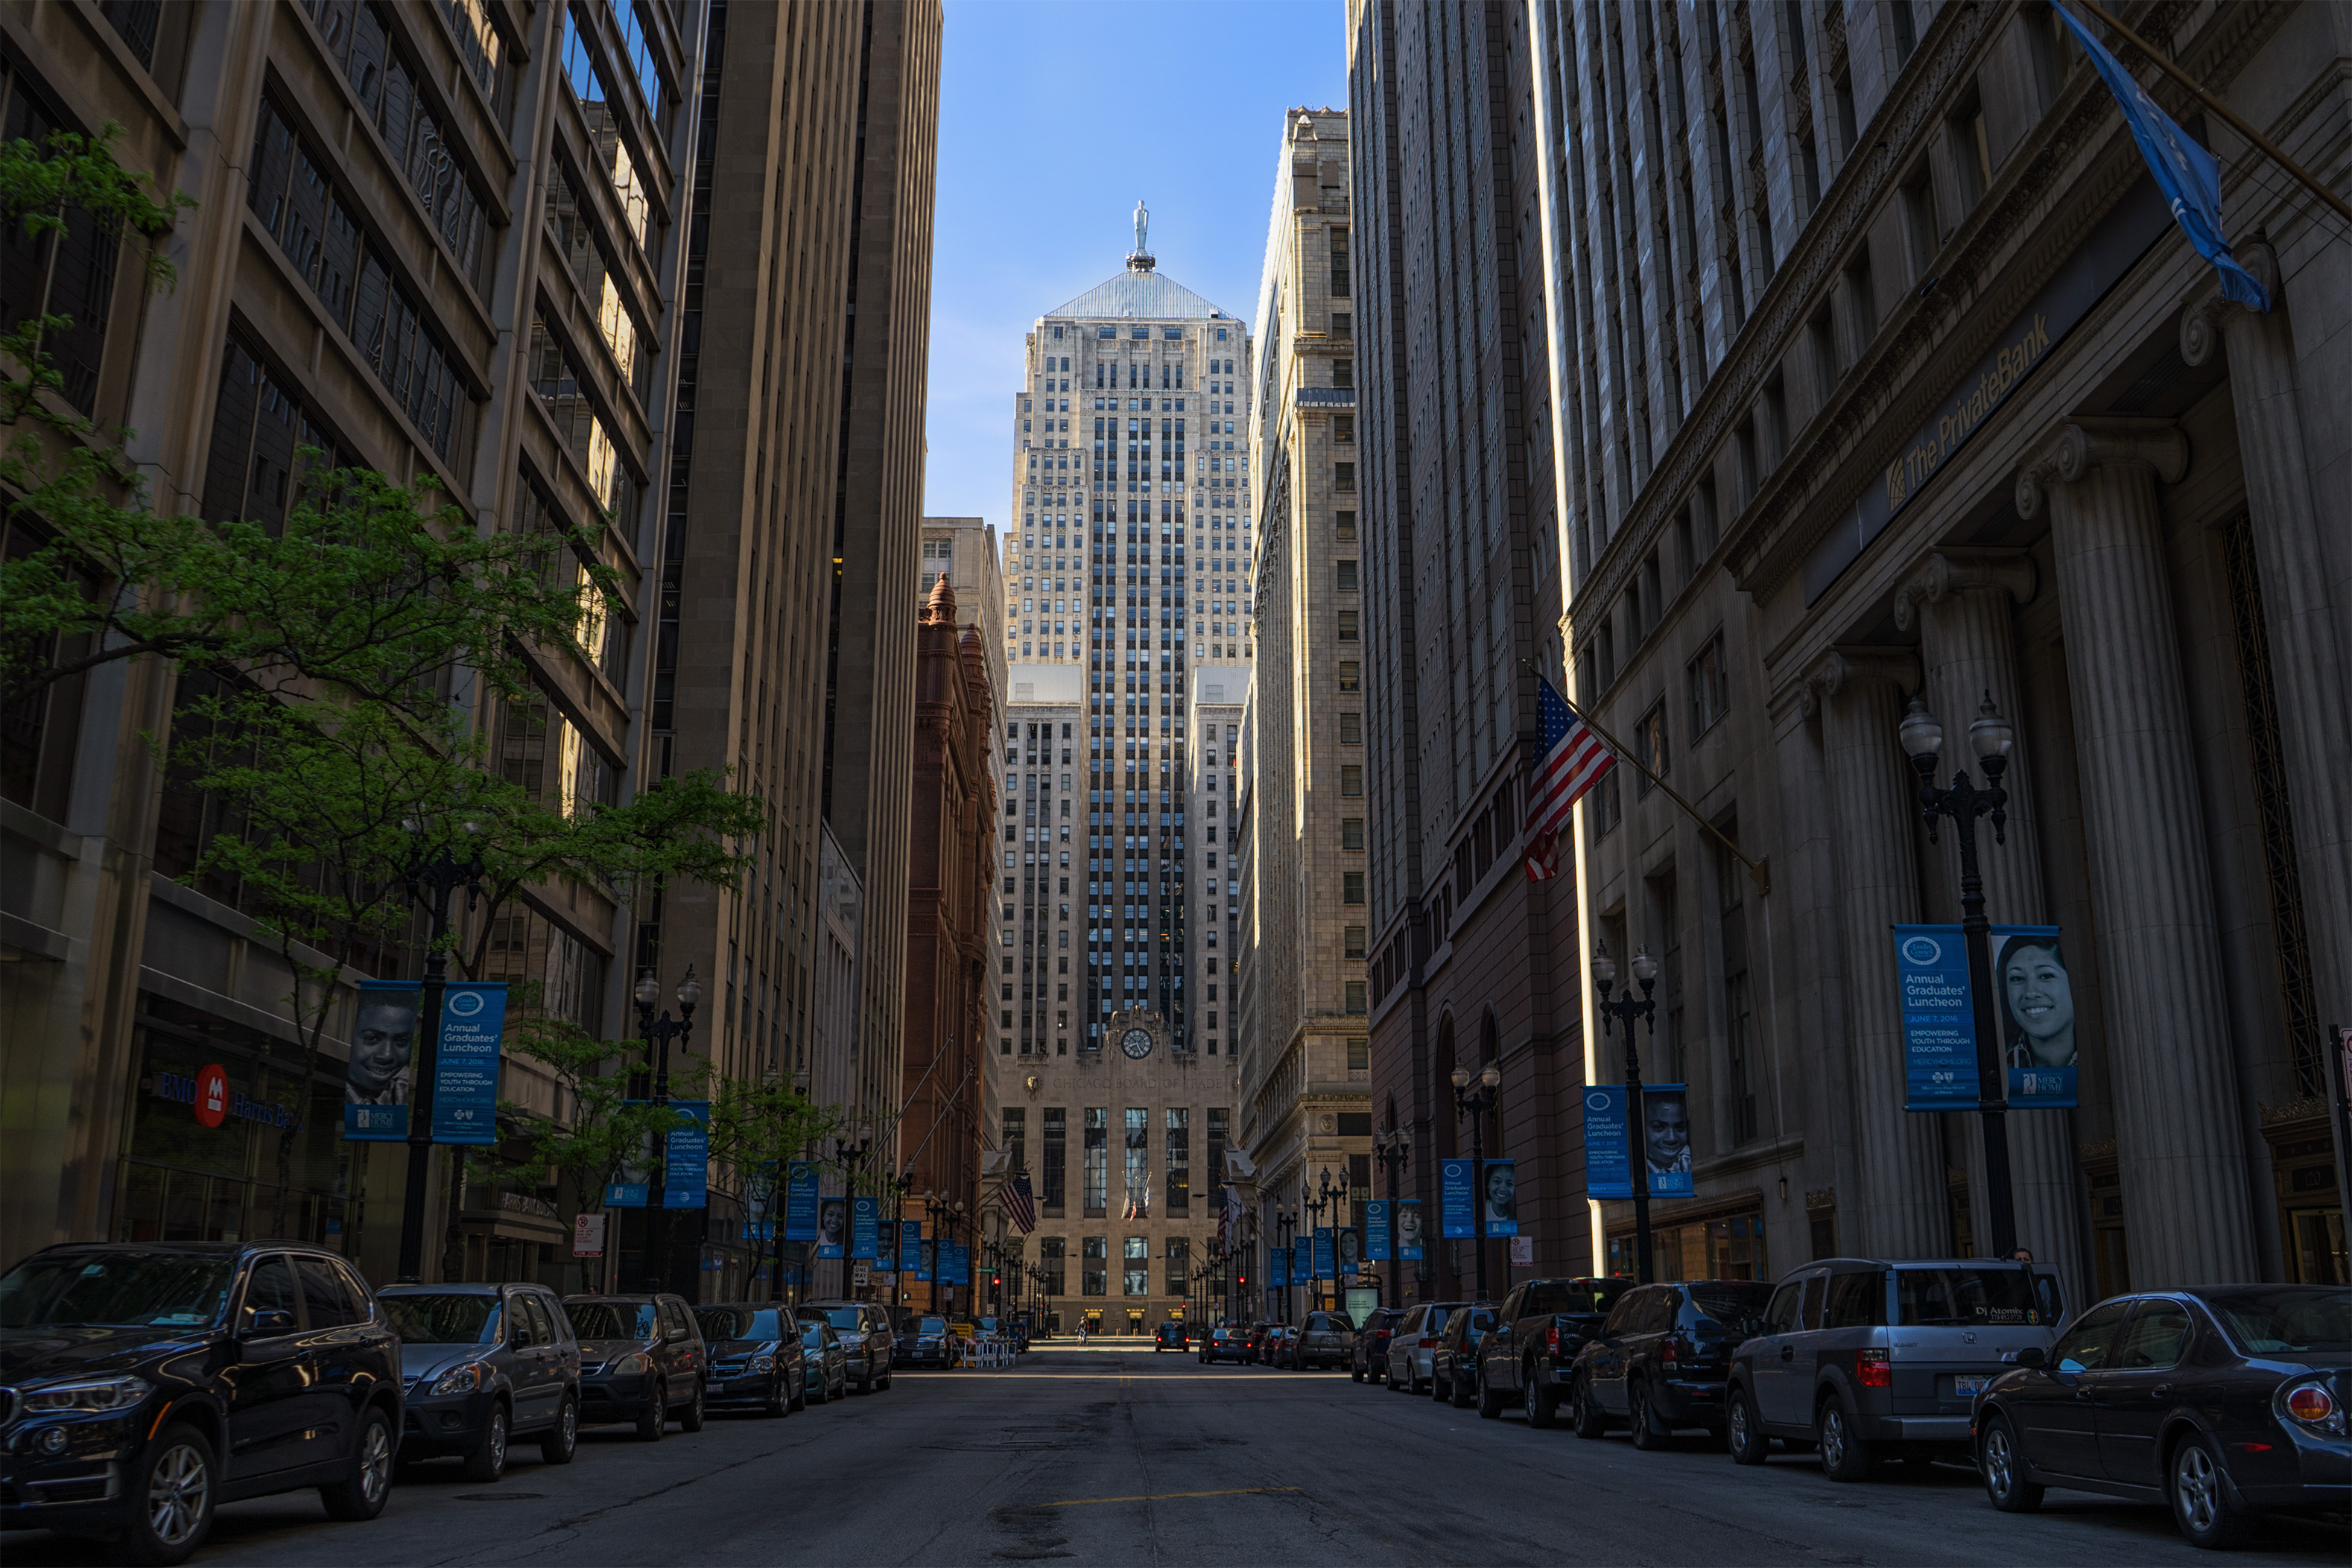 Chicago Chamber of Commerce building